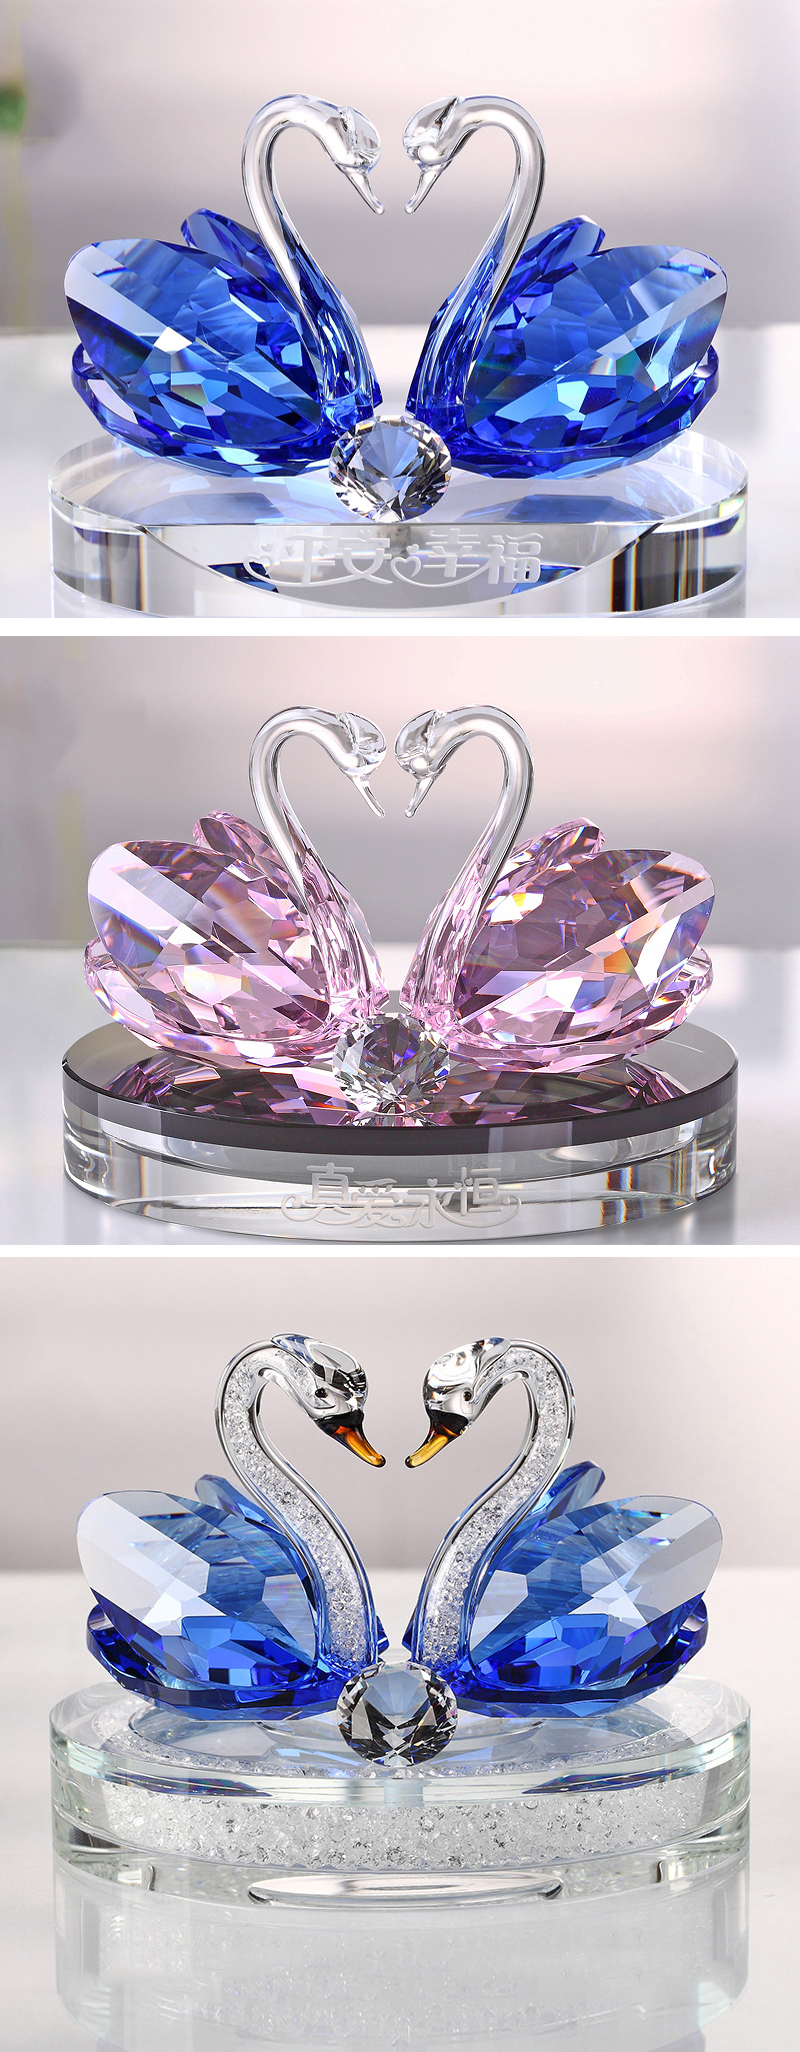 Wholesale Creative Car Decoration Crystal Swan crafts perfume bottles for Business Gift